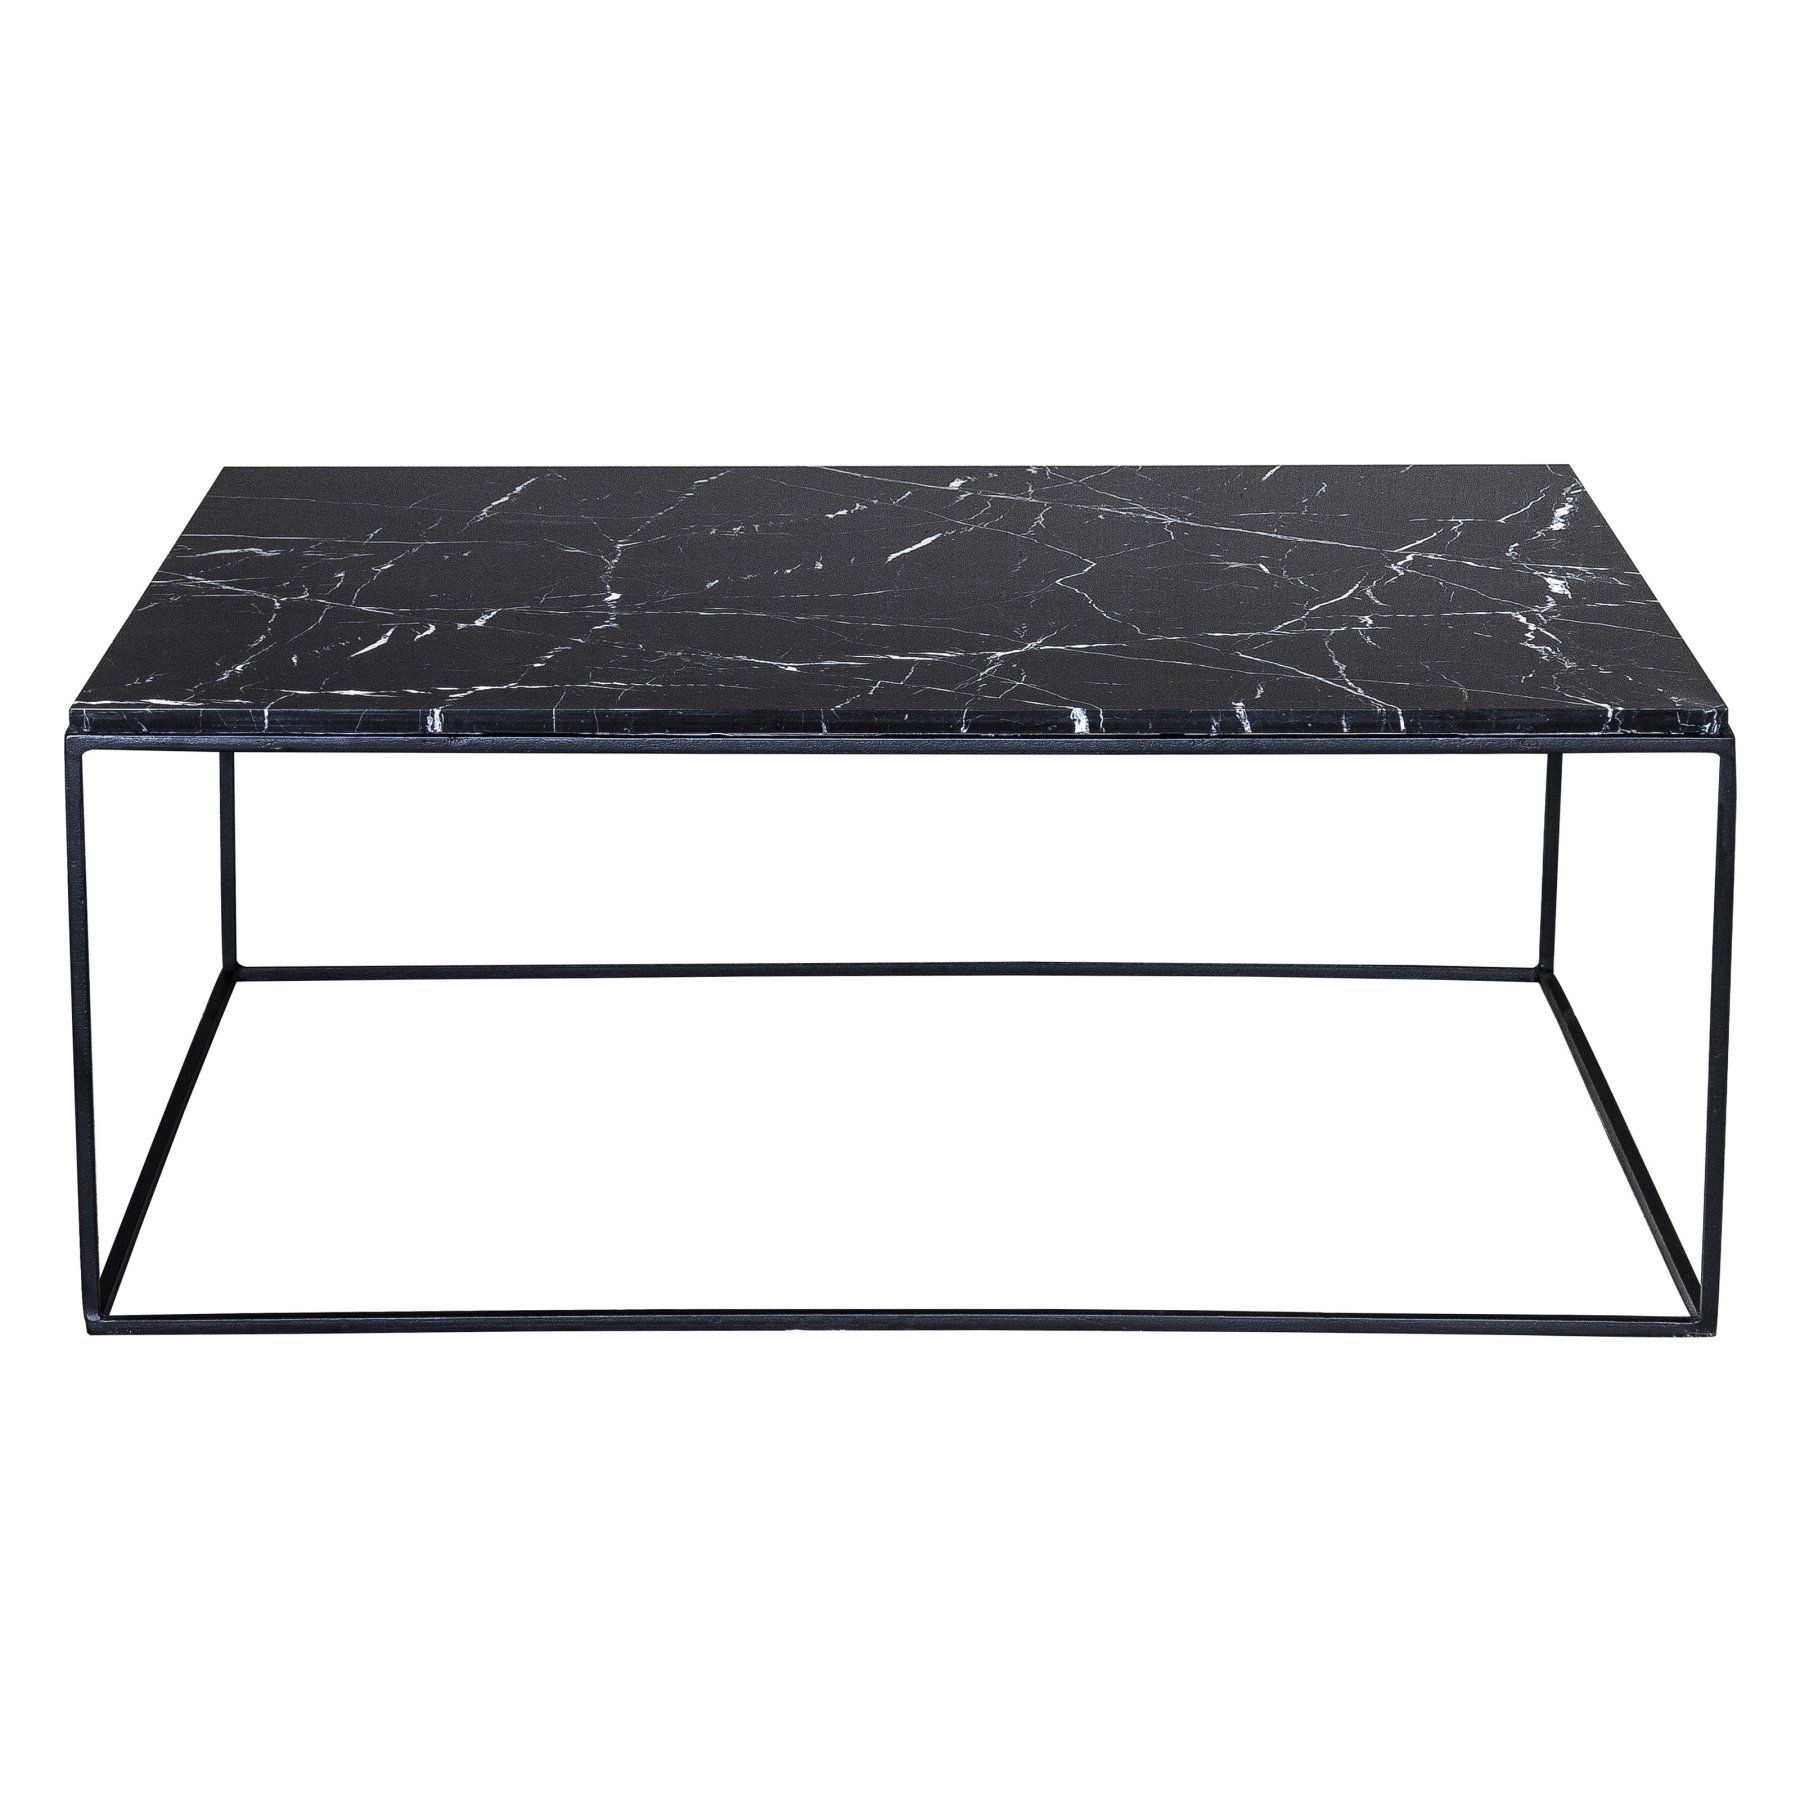 Cdi International Furniture Stone Coffee Table  Large  Tc1259